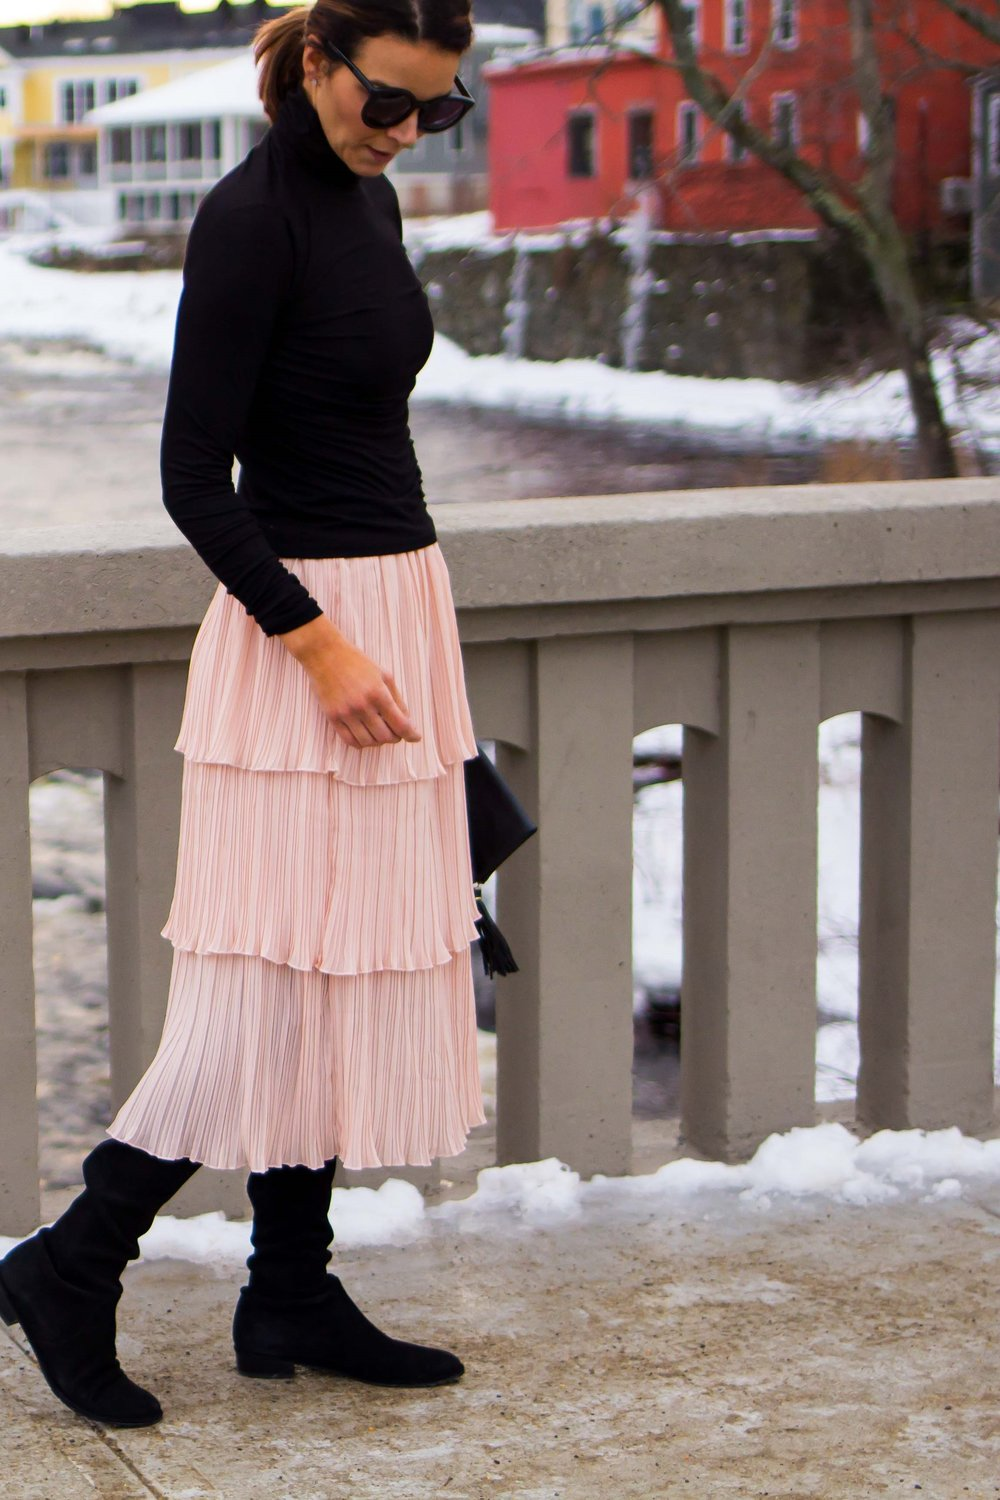 Midi Skirt Outfits - Tiered Skirt Outfits -Ruffle Midi Skirt Outfits - Nude Skirt Outfits - Blush Skirt Outfits - Weekend Outfits - Casual Outfits for Women - OTK Boot Outfits - Over the Knee Boot Outfits - Work Outfits for Women - Fashion for Women -  heartandseam.com  #heartandseam